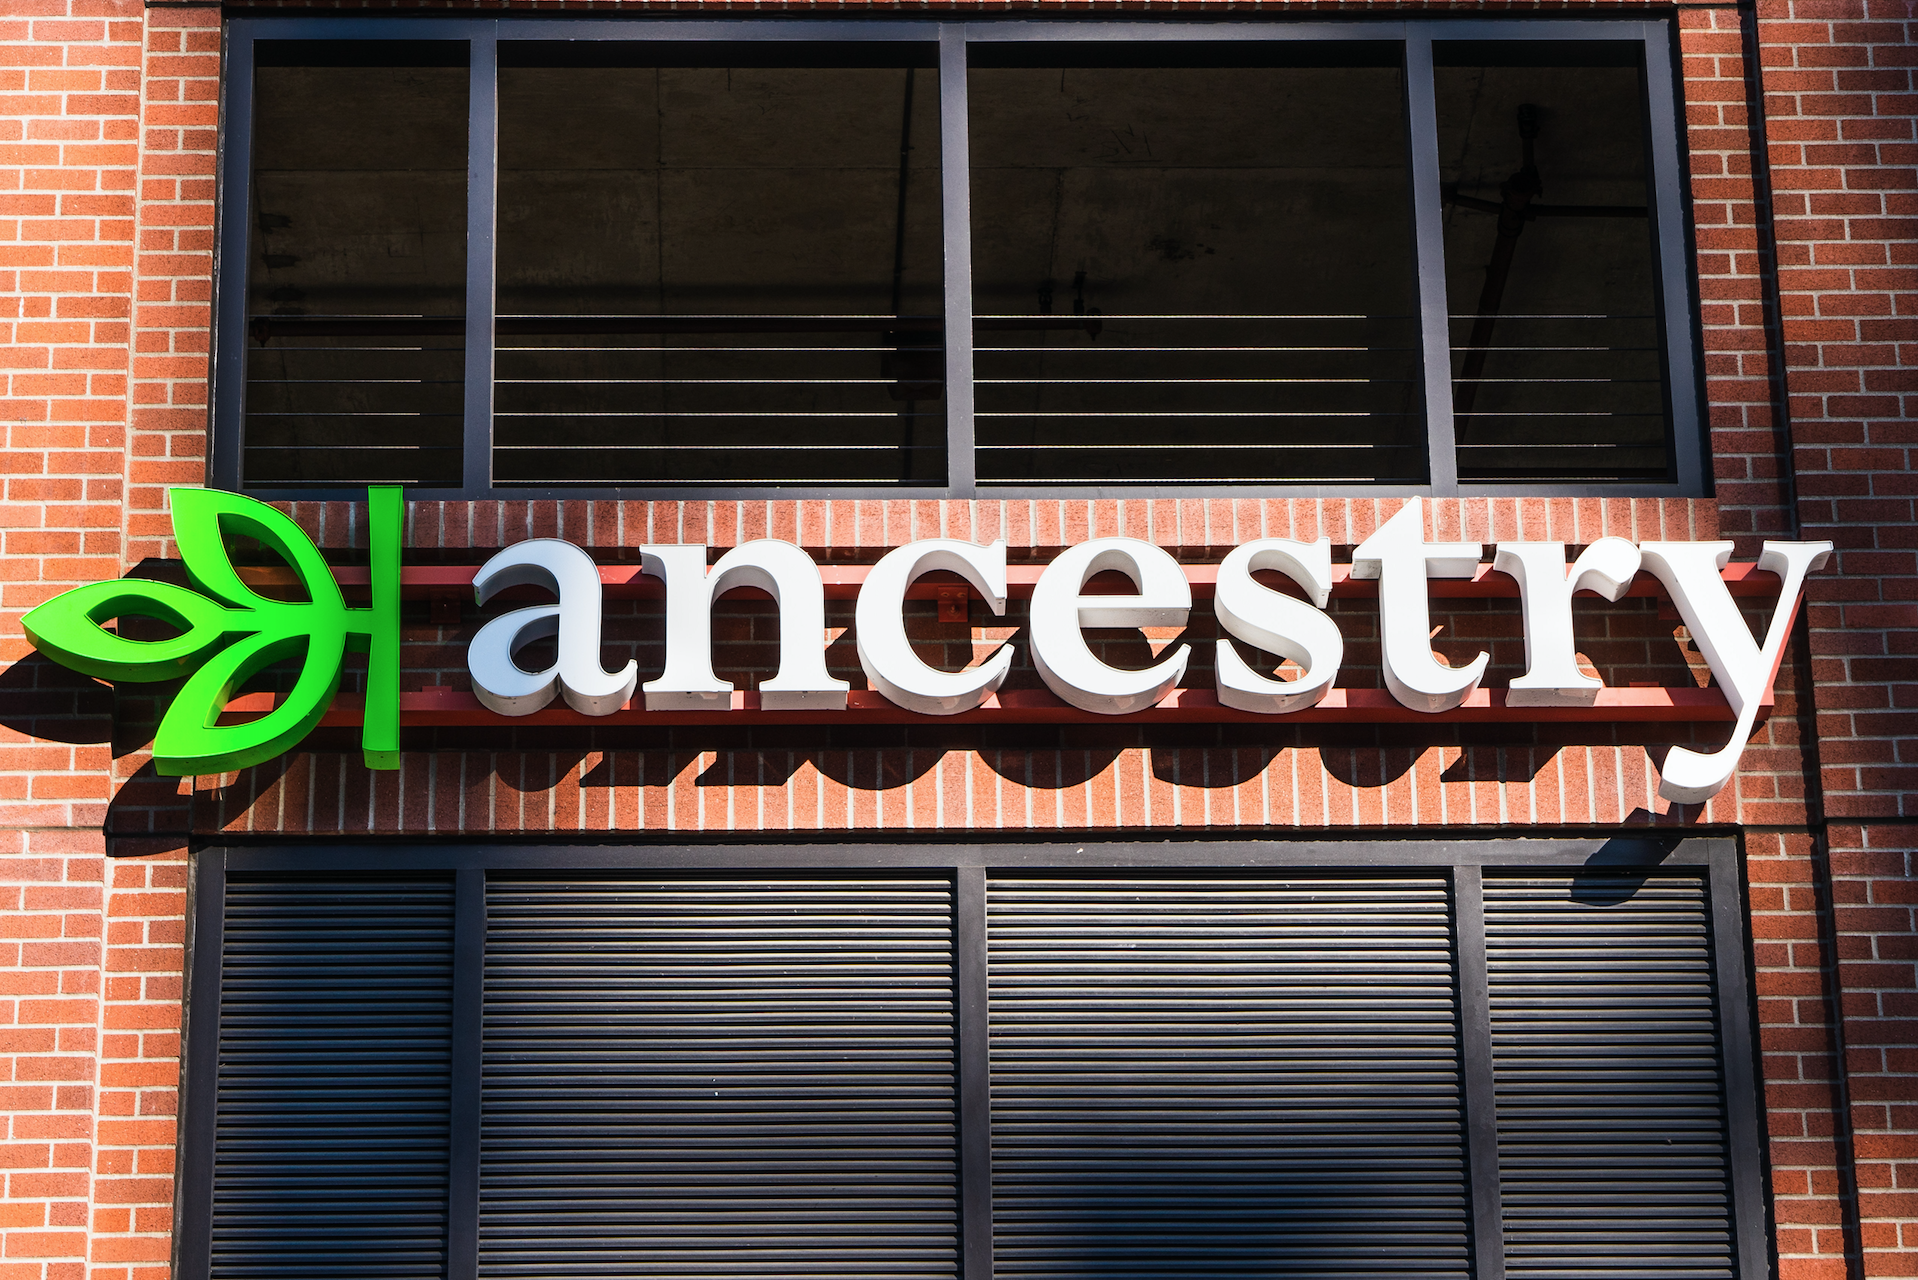 Ancestry Rolls Out More Advanced Dna Testing To Flag Risk Of Heart Disease Breast Cancer Fiercehealthcare